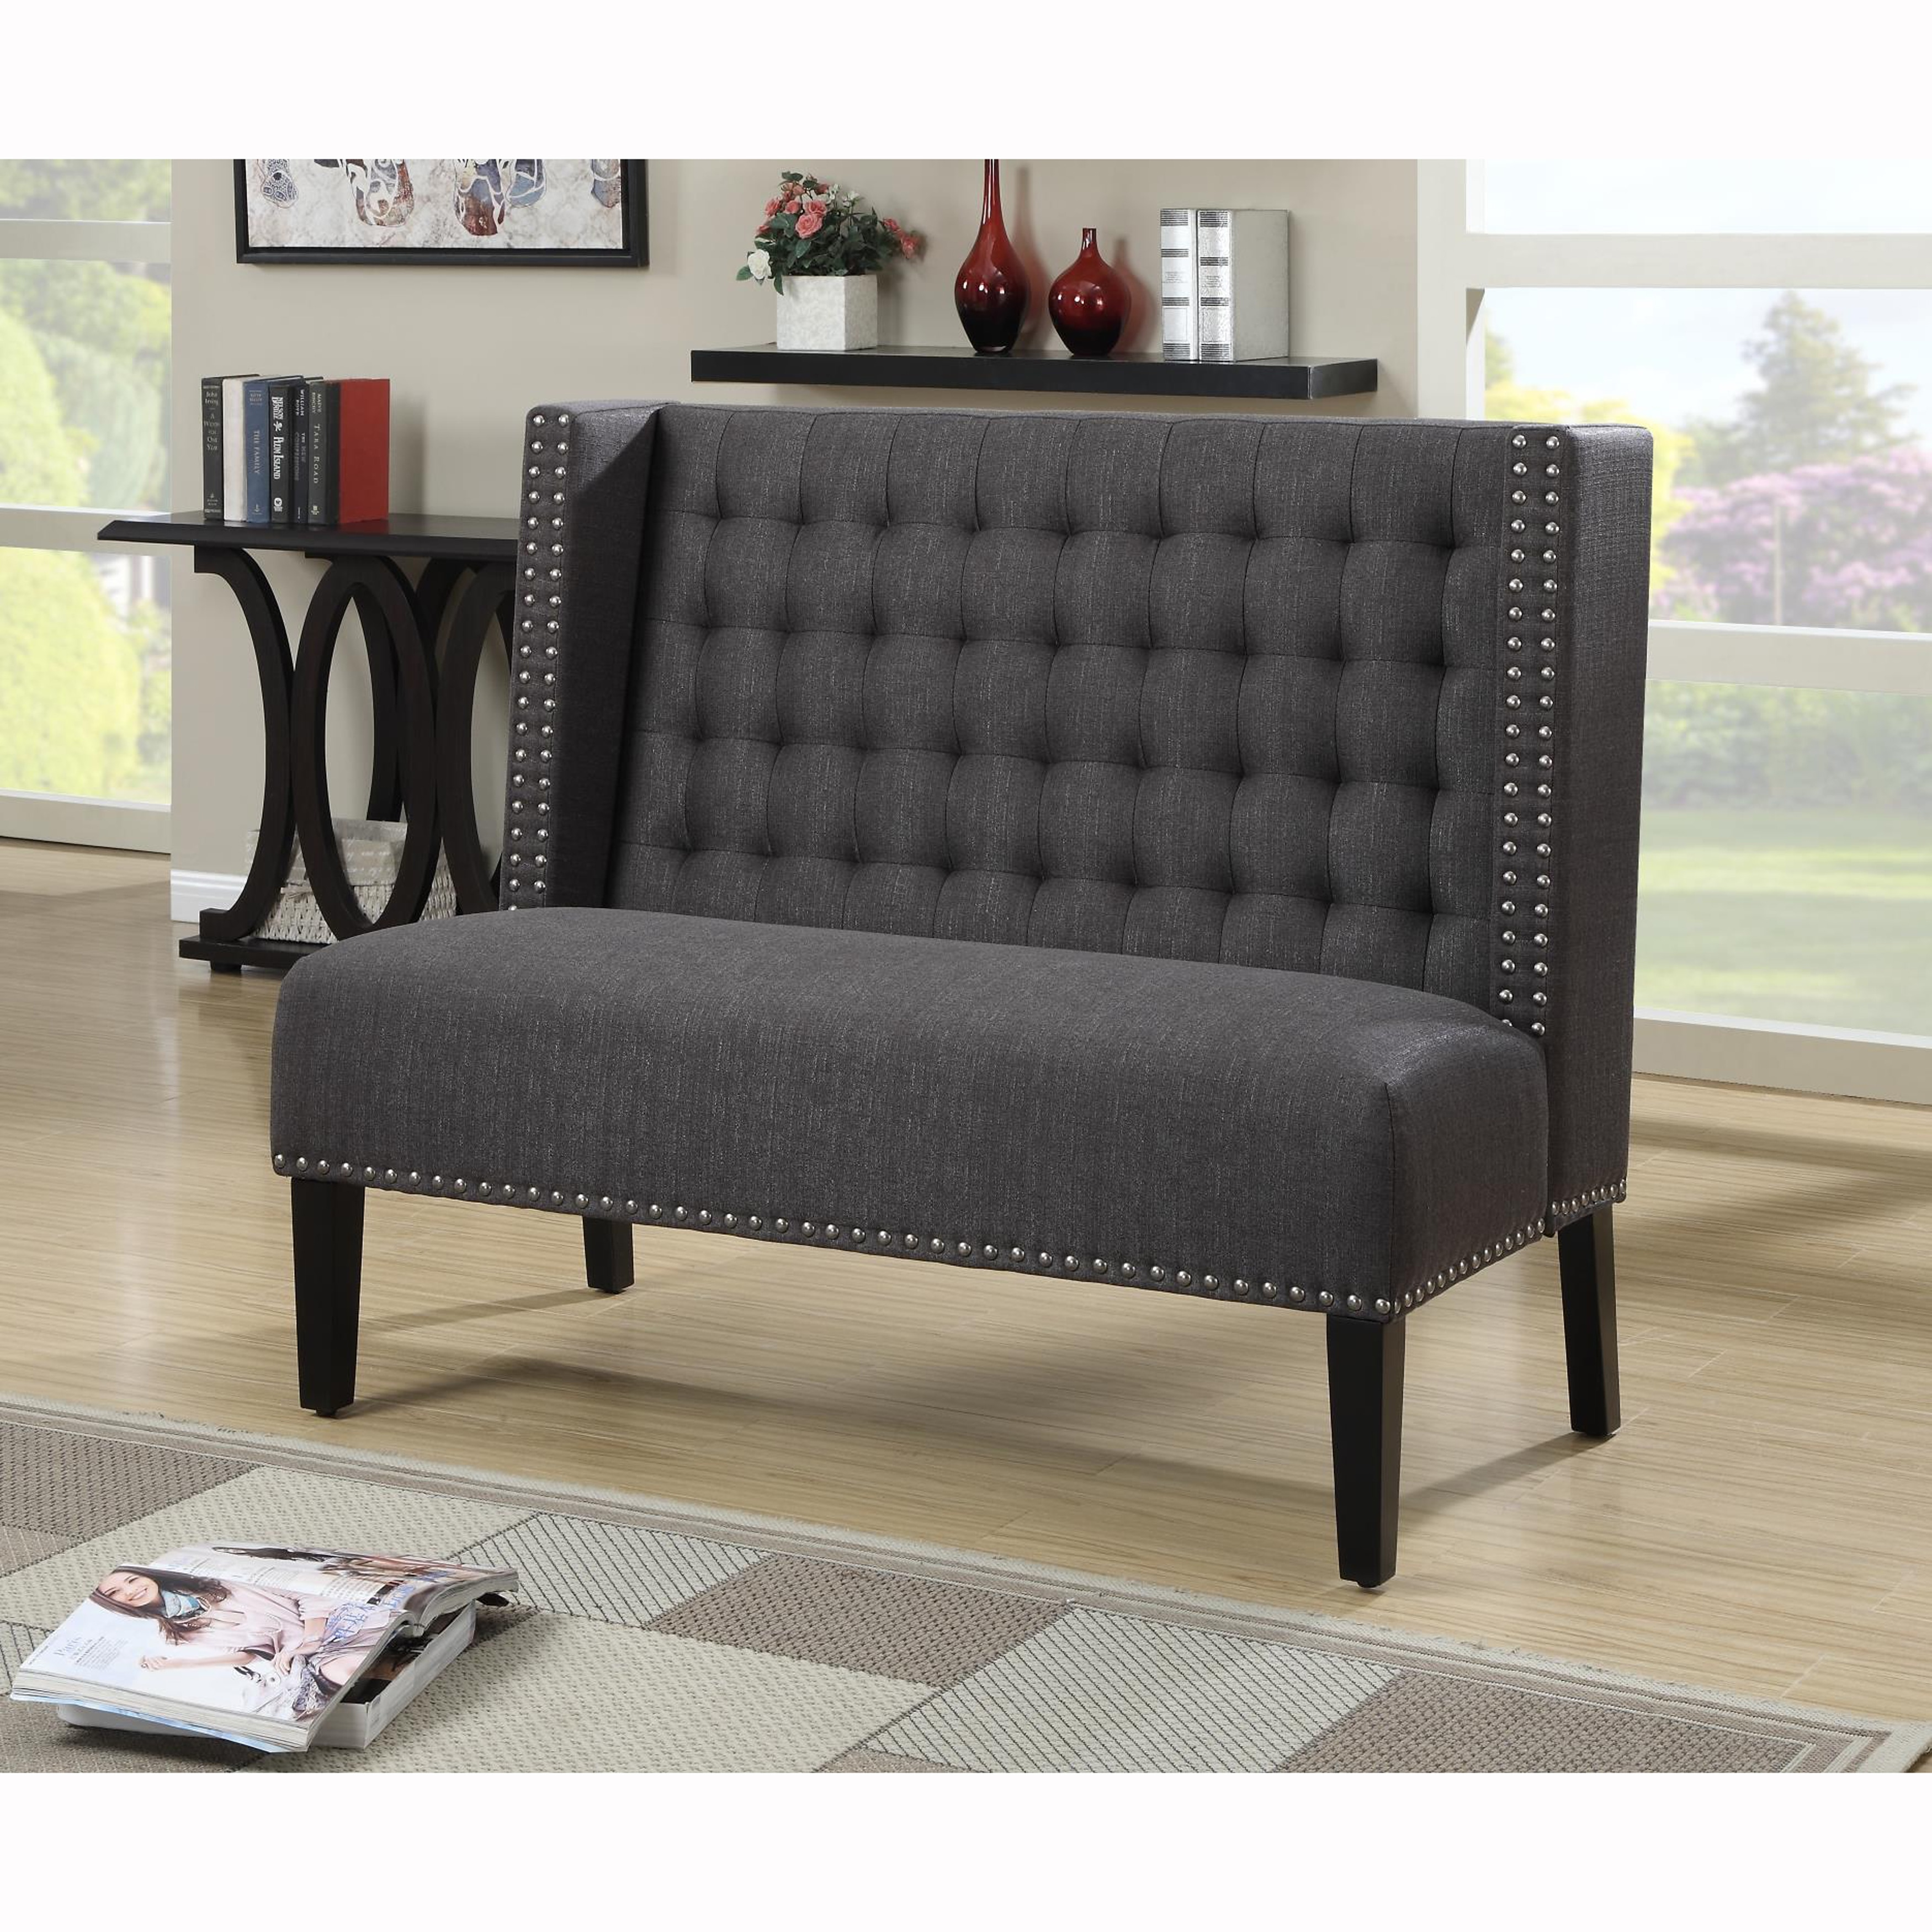 Dark Grey Tufted Upholstered Banquette Bench   Free Shipping Today    Overstock.com   17197819